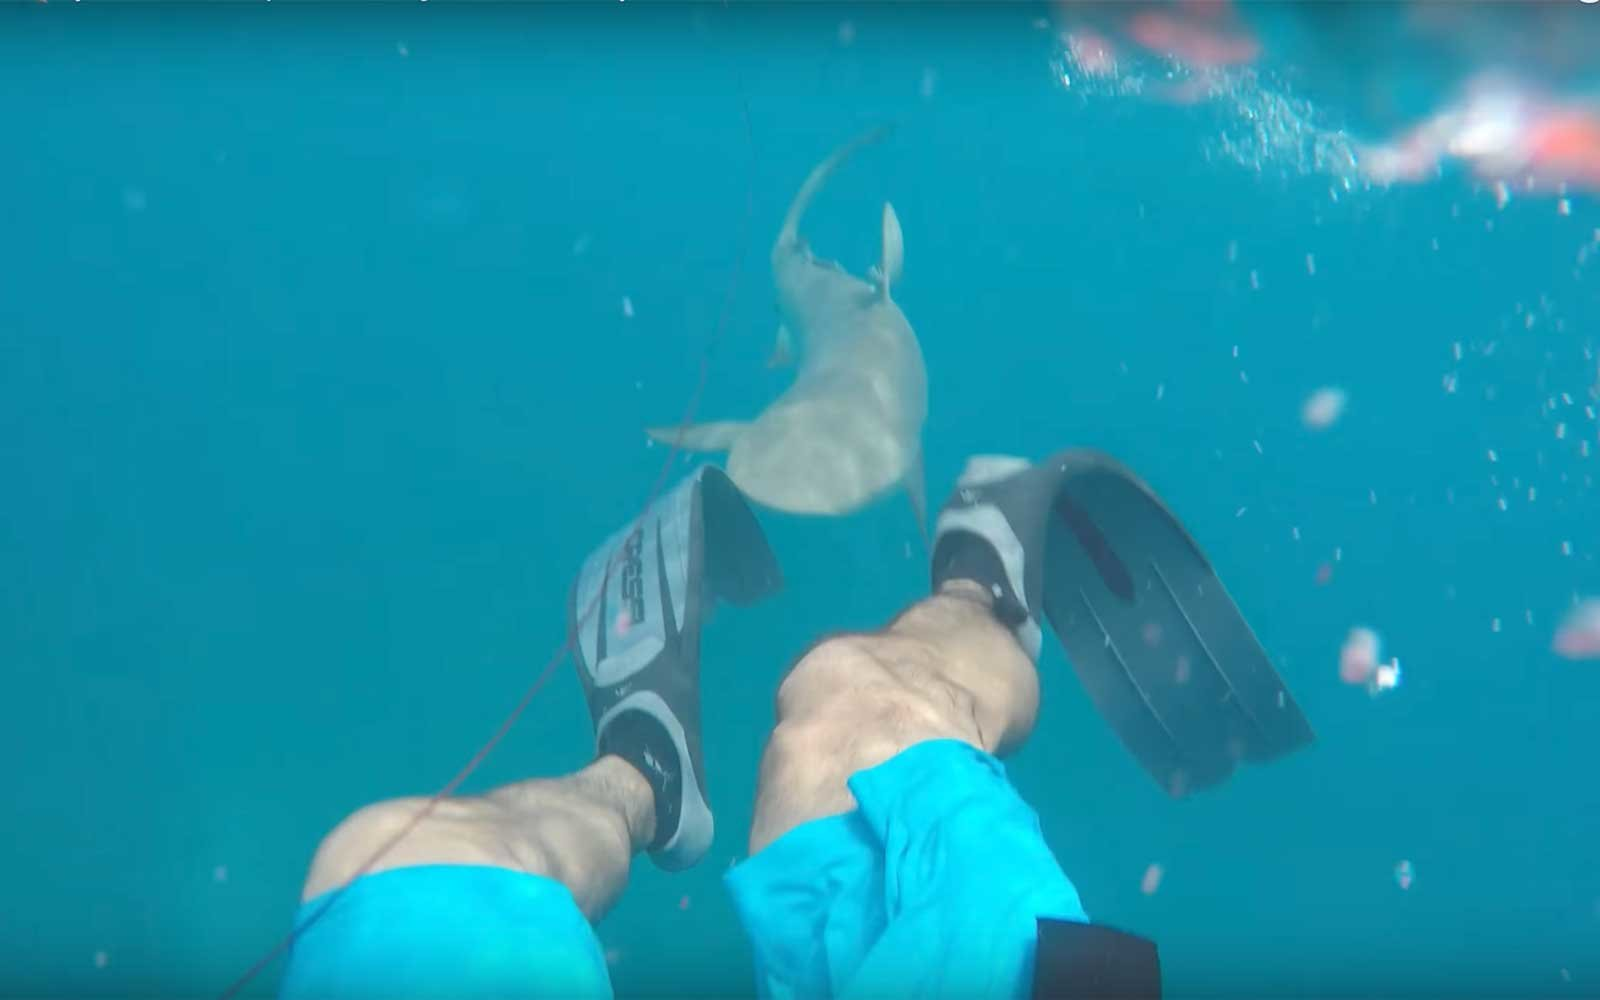 Watch This Fisherman Film His Own Brutal Shark Attack In